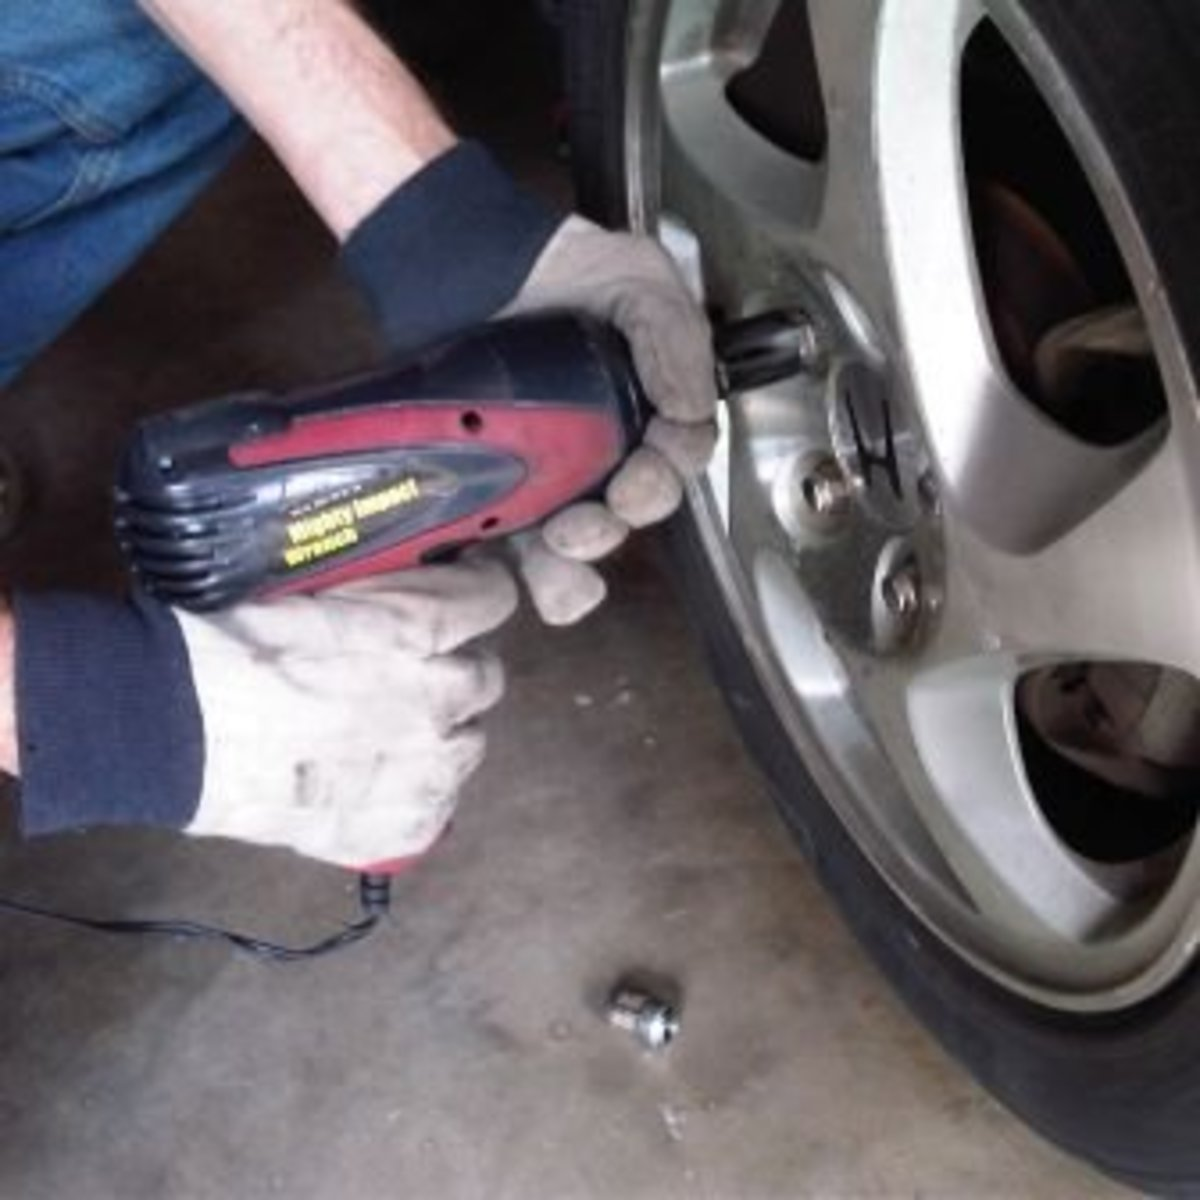 Stuck lug nuts are easy work for this Wagan impact wrench that plugs into a 12-volt car power outlet.